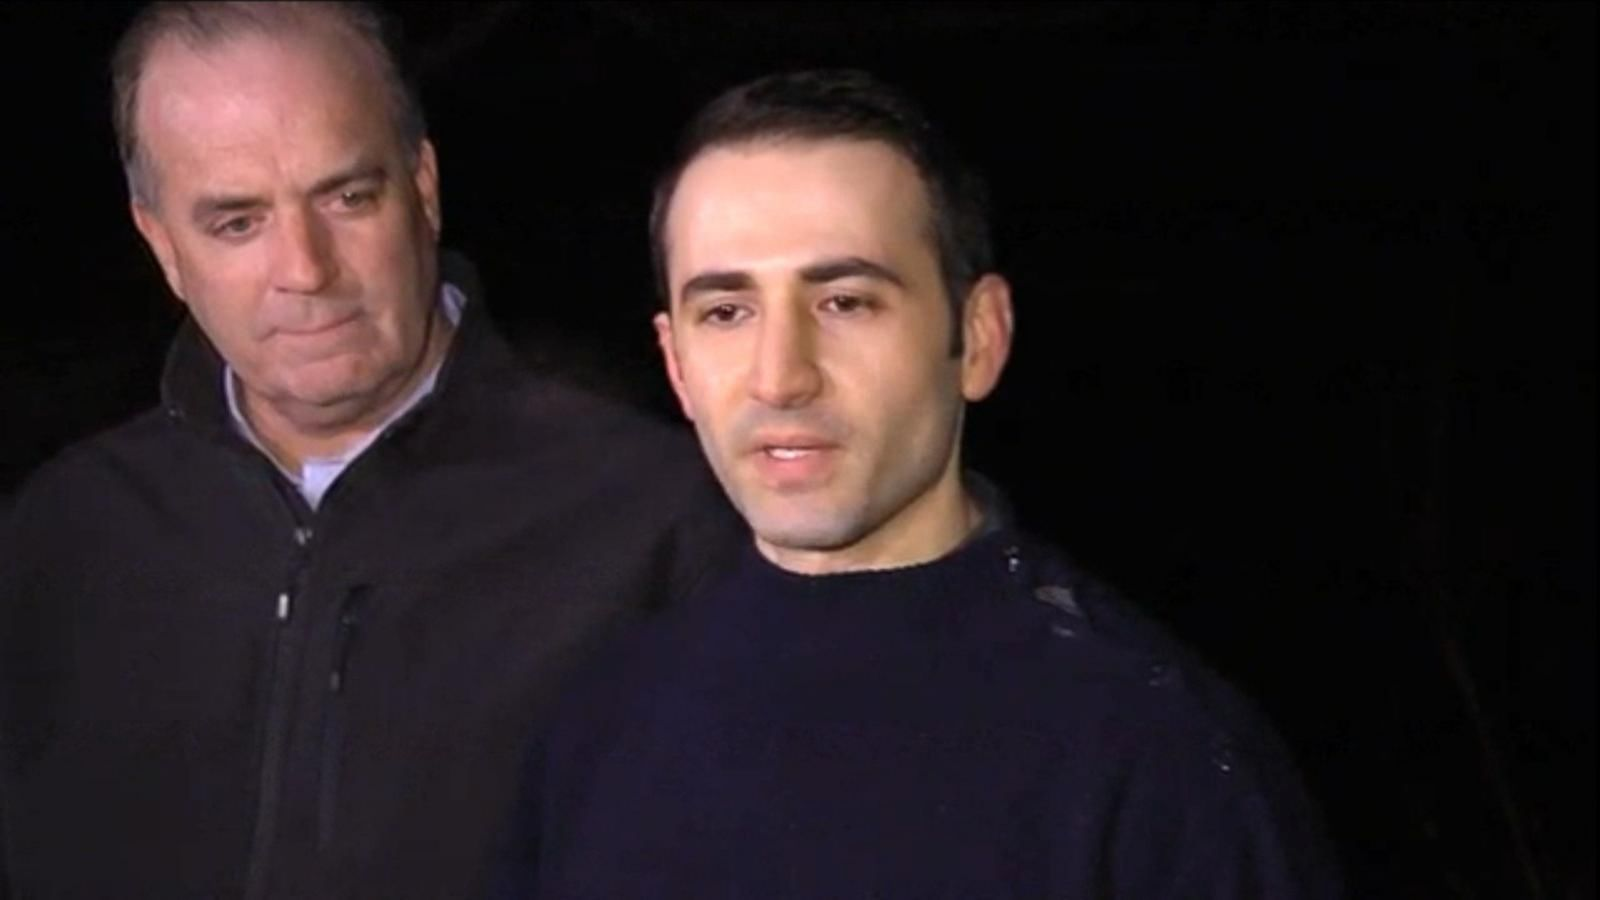 Freed Iran Prisoner Amir Hekmati Returns Home, Thanks Obama - ABC News